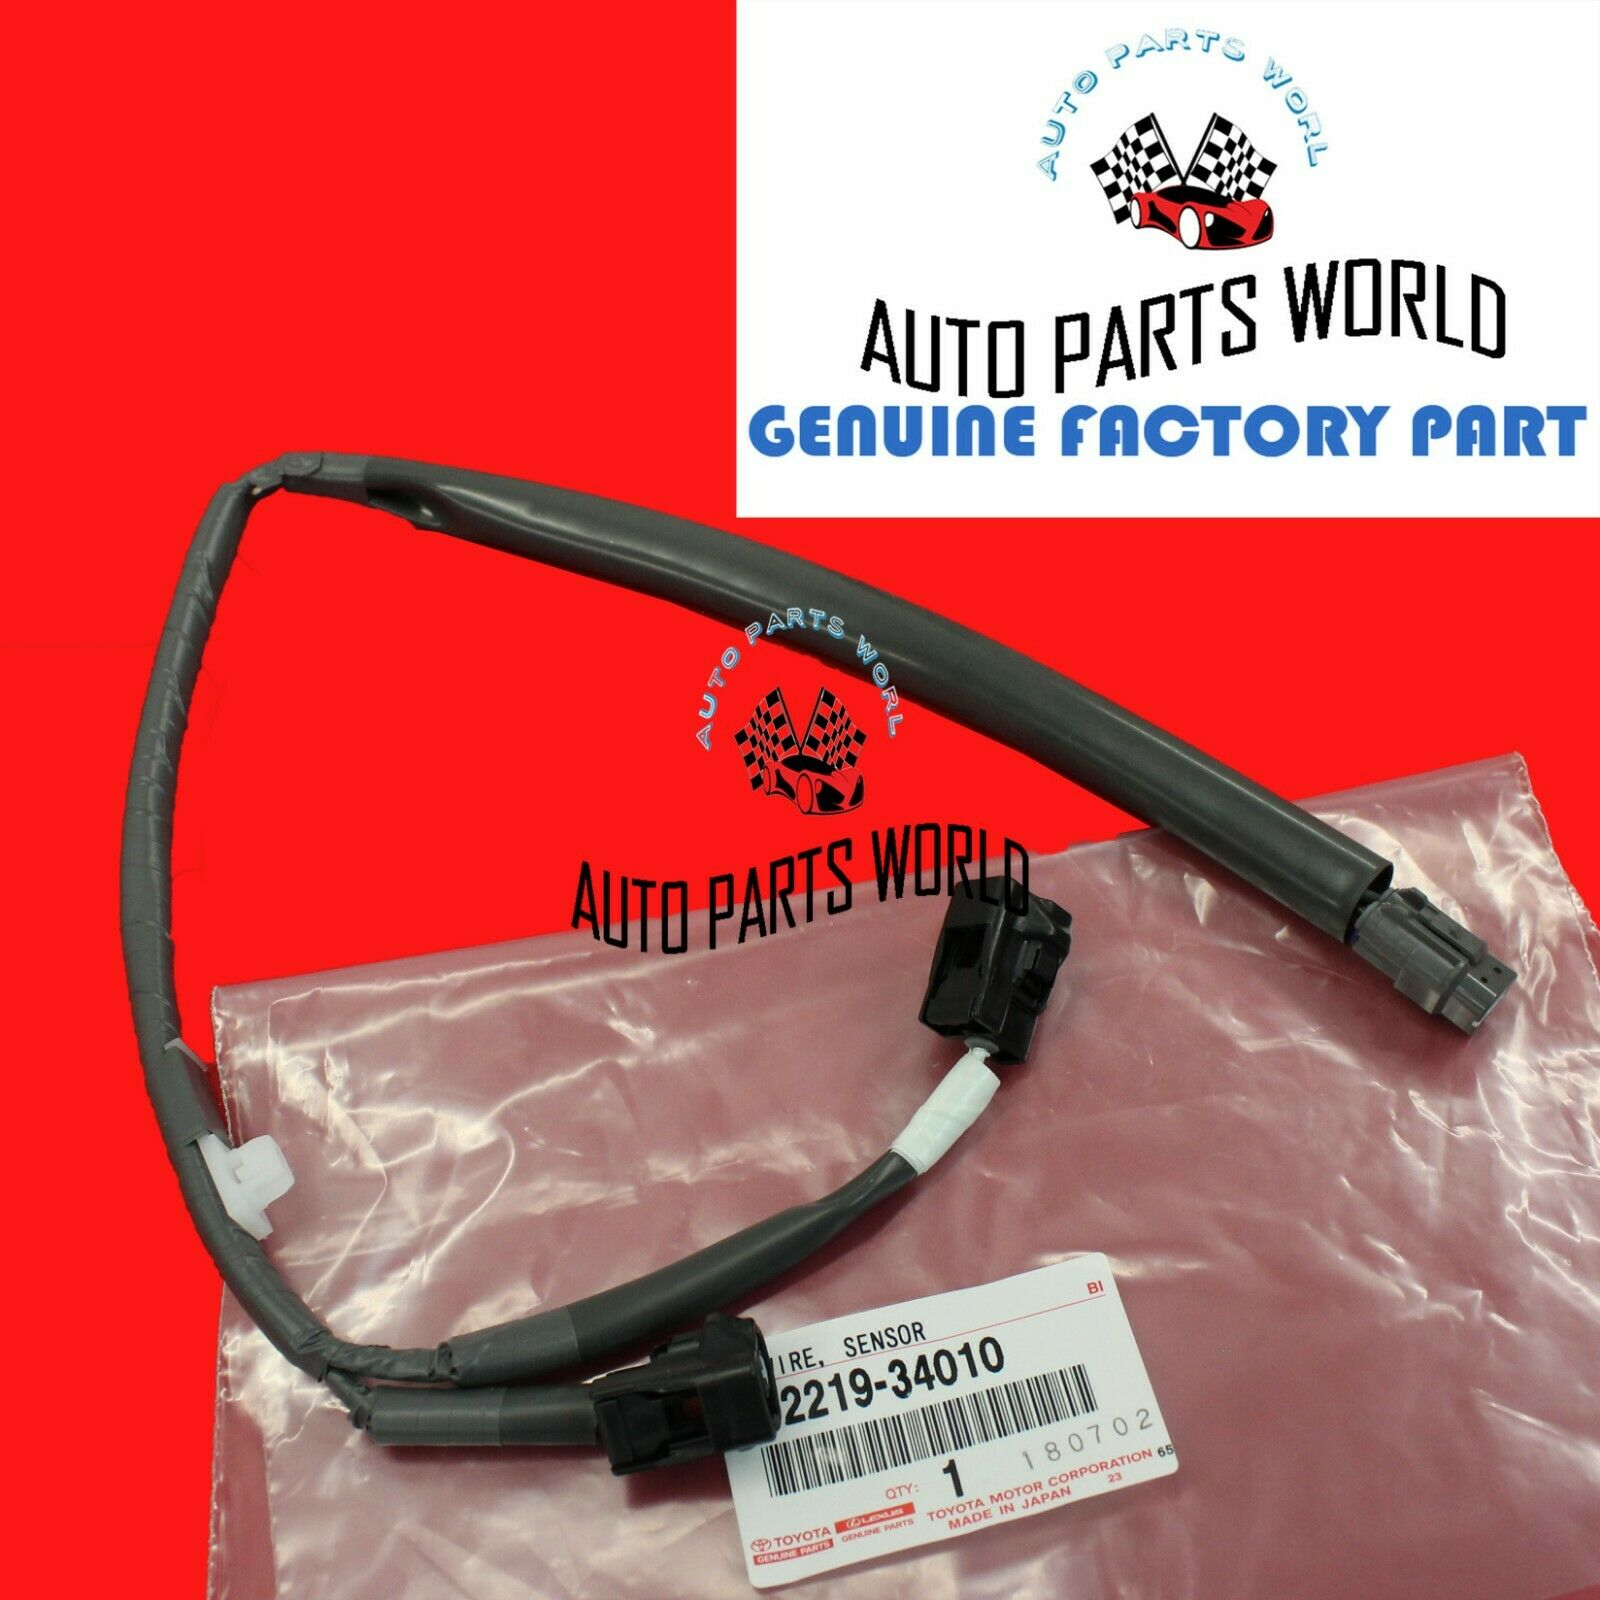 Genuine Toyota 4Runner Tacoma Tundra 3.4L Knock Sensor Wire Harness  82219-34010 1 of 5Only 0 available ...